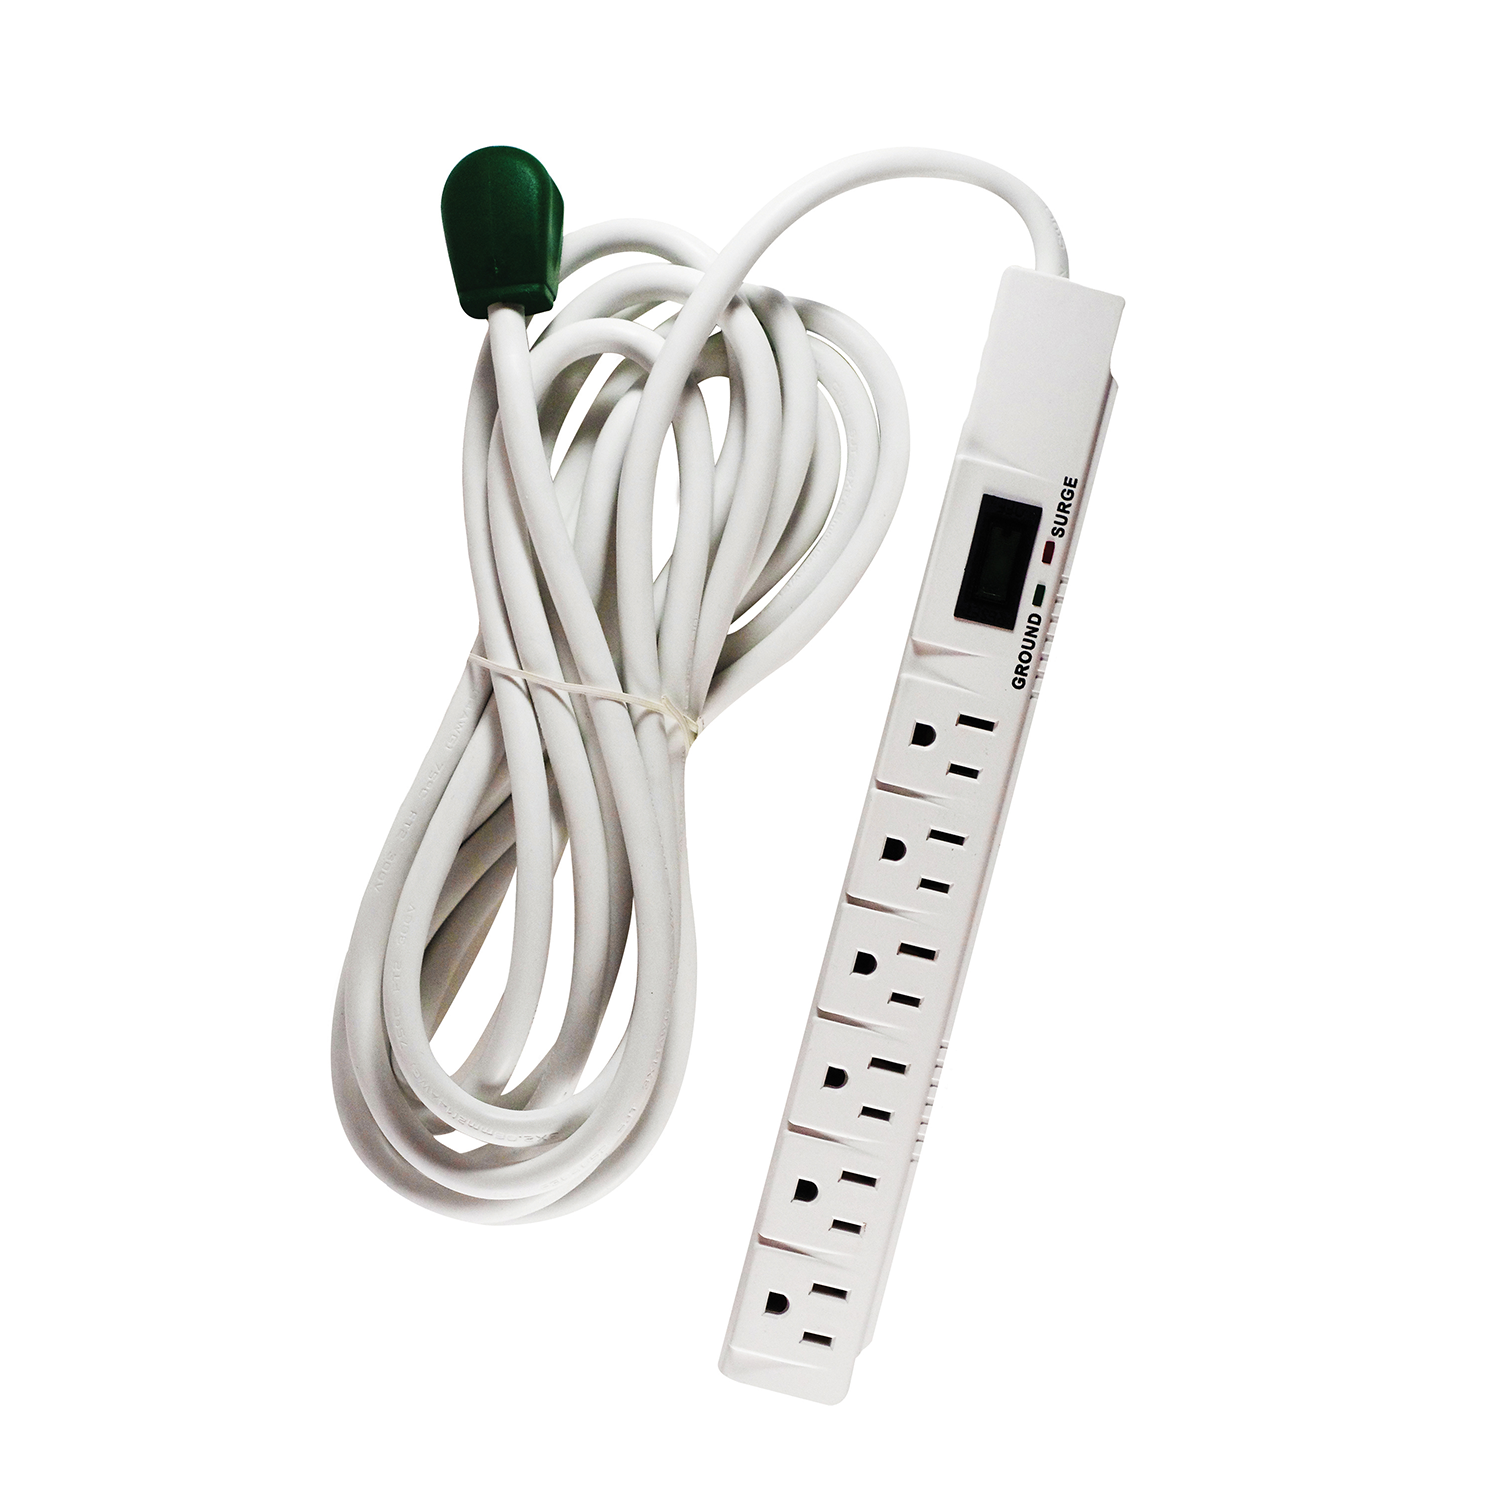 GoGreen Power 6 Outlet Surge Protector, 16315-15, 15' cord, White